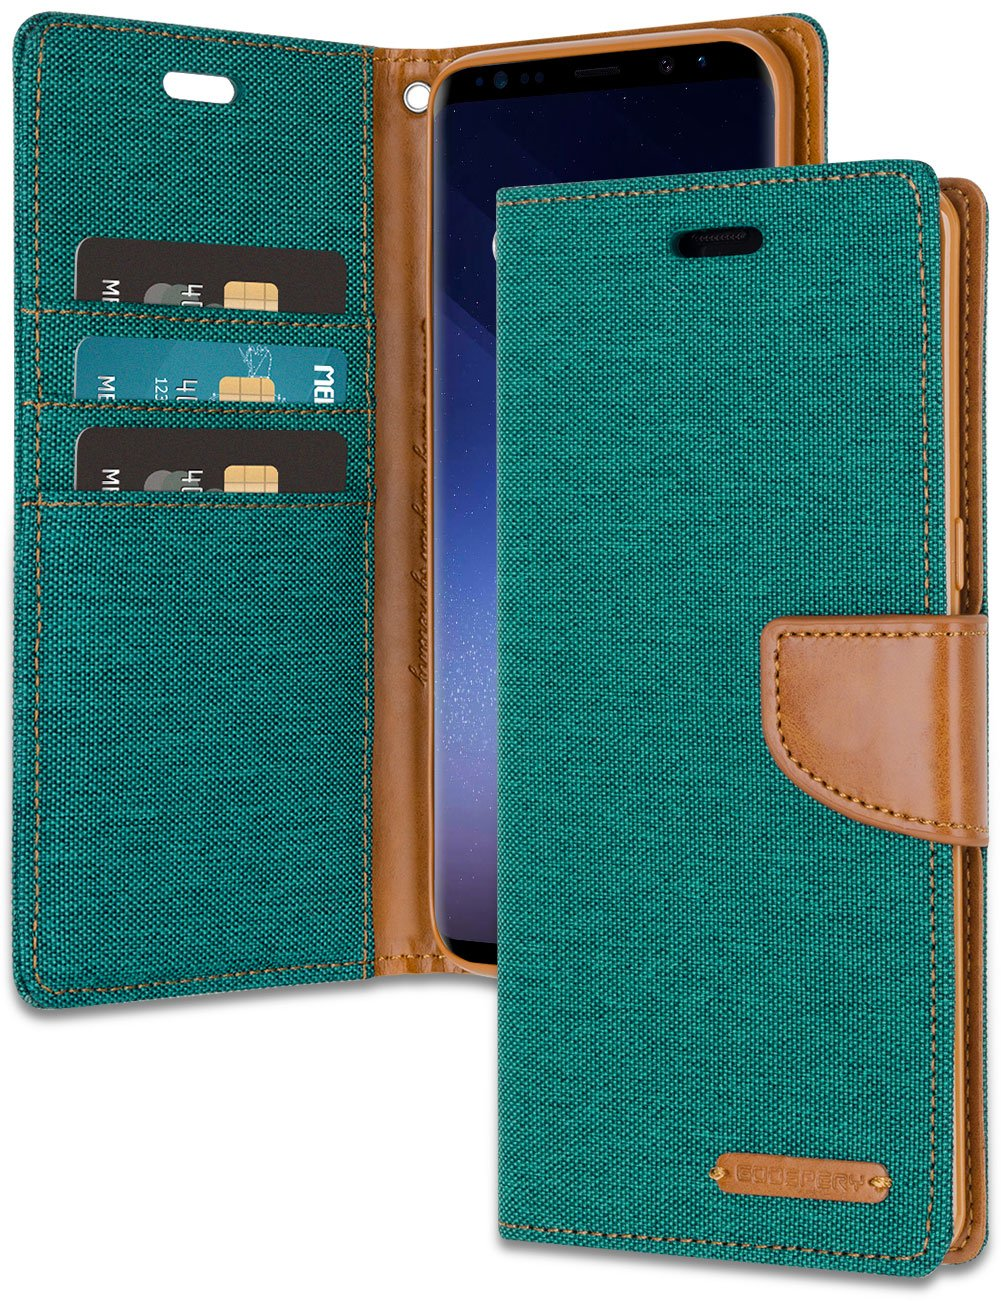 Galaxy S9 Plus Wallet Case With Free 4 Gifts Shockproof Goospery Samsung Grand Prime Canvas Diary Green Vermagnetic Denim Material Card Holder Kickstand Flip